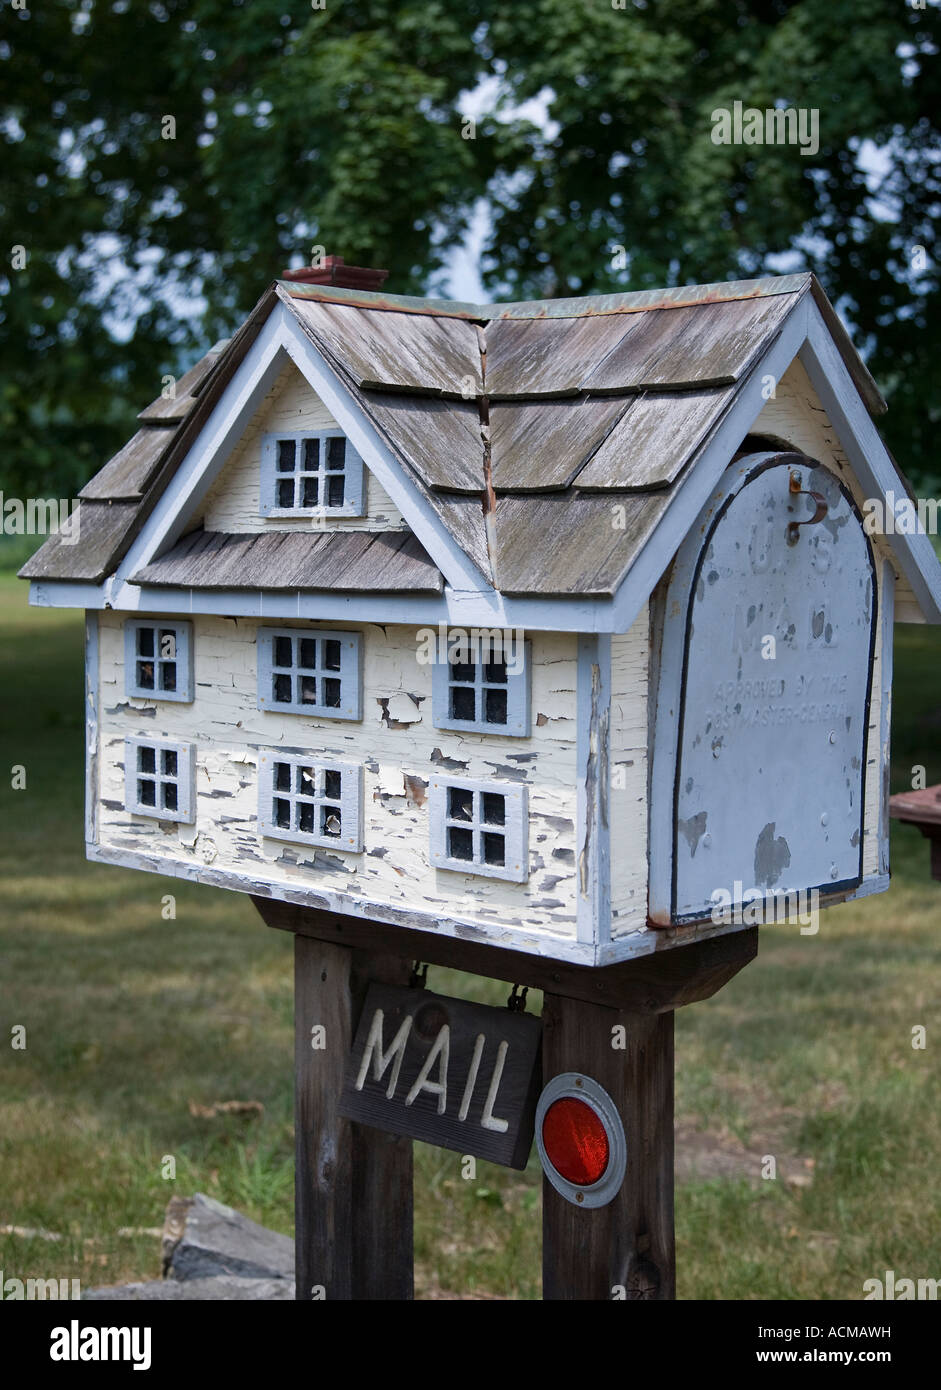 mailbox in the shape of a small house stock photo royalty